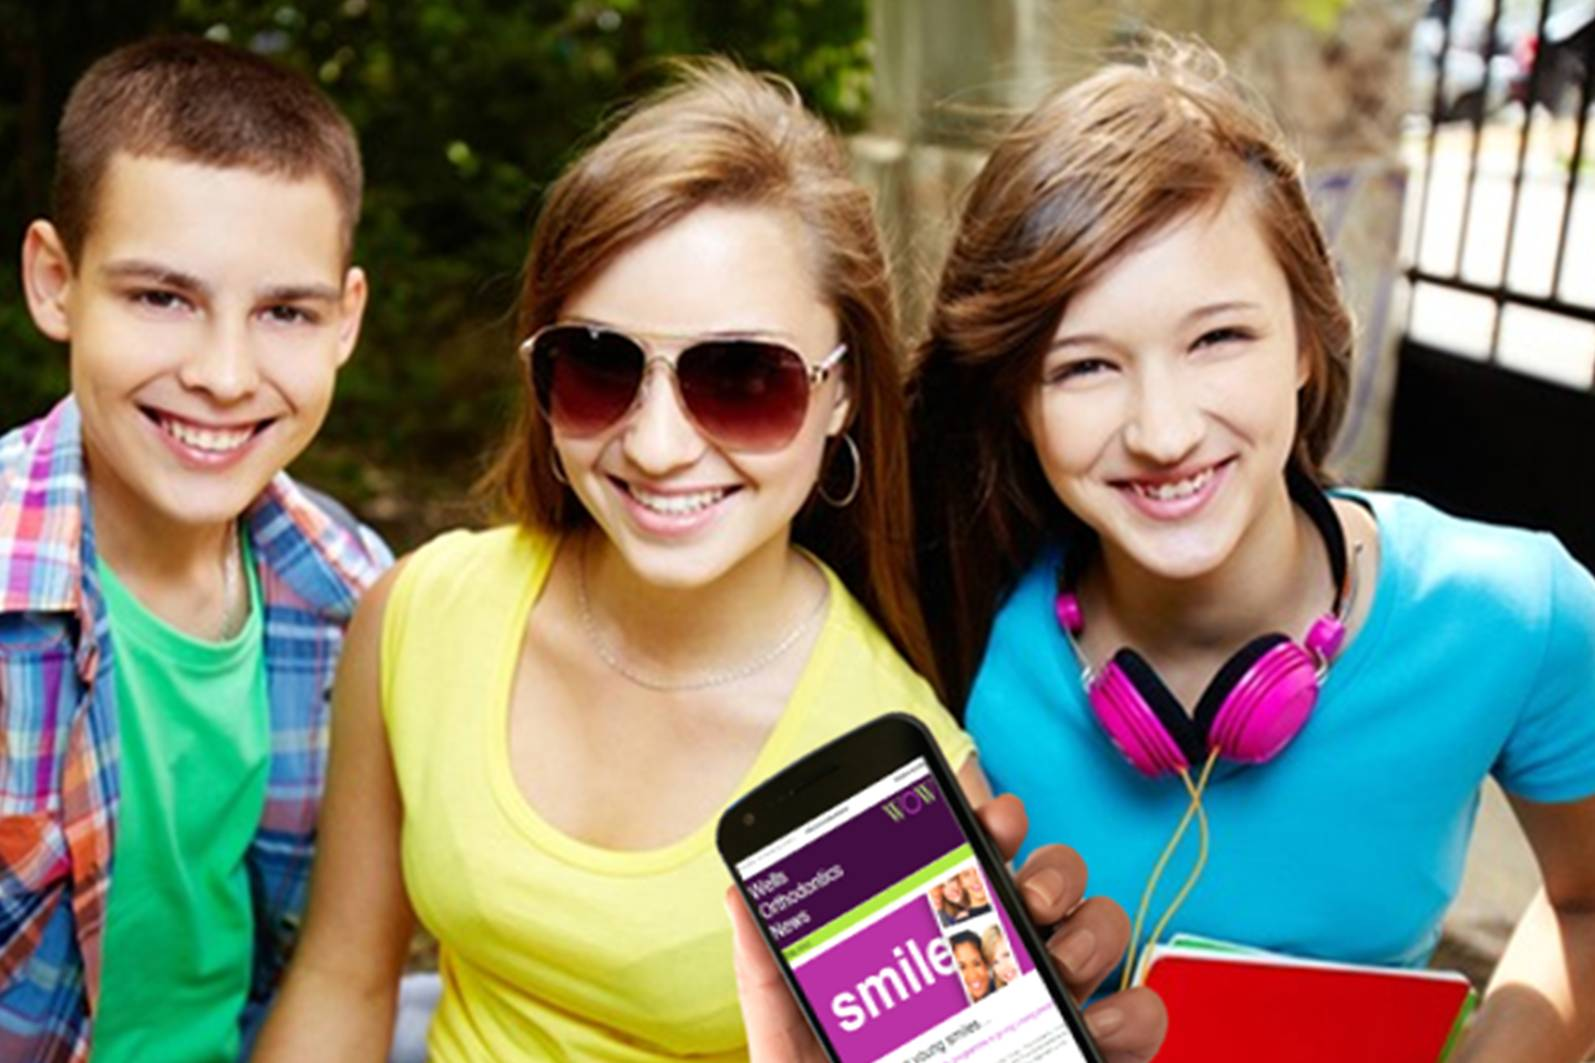 teenagers, sunglasses, mobile phine, pink headphones